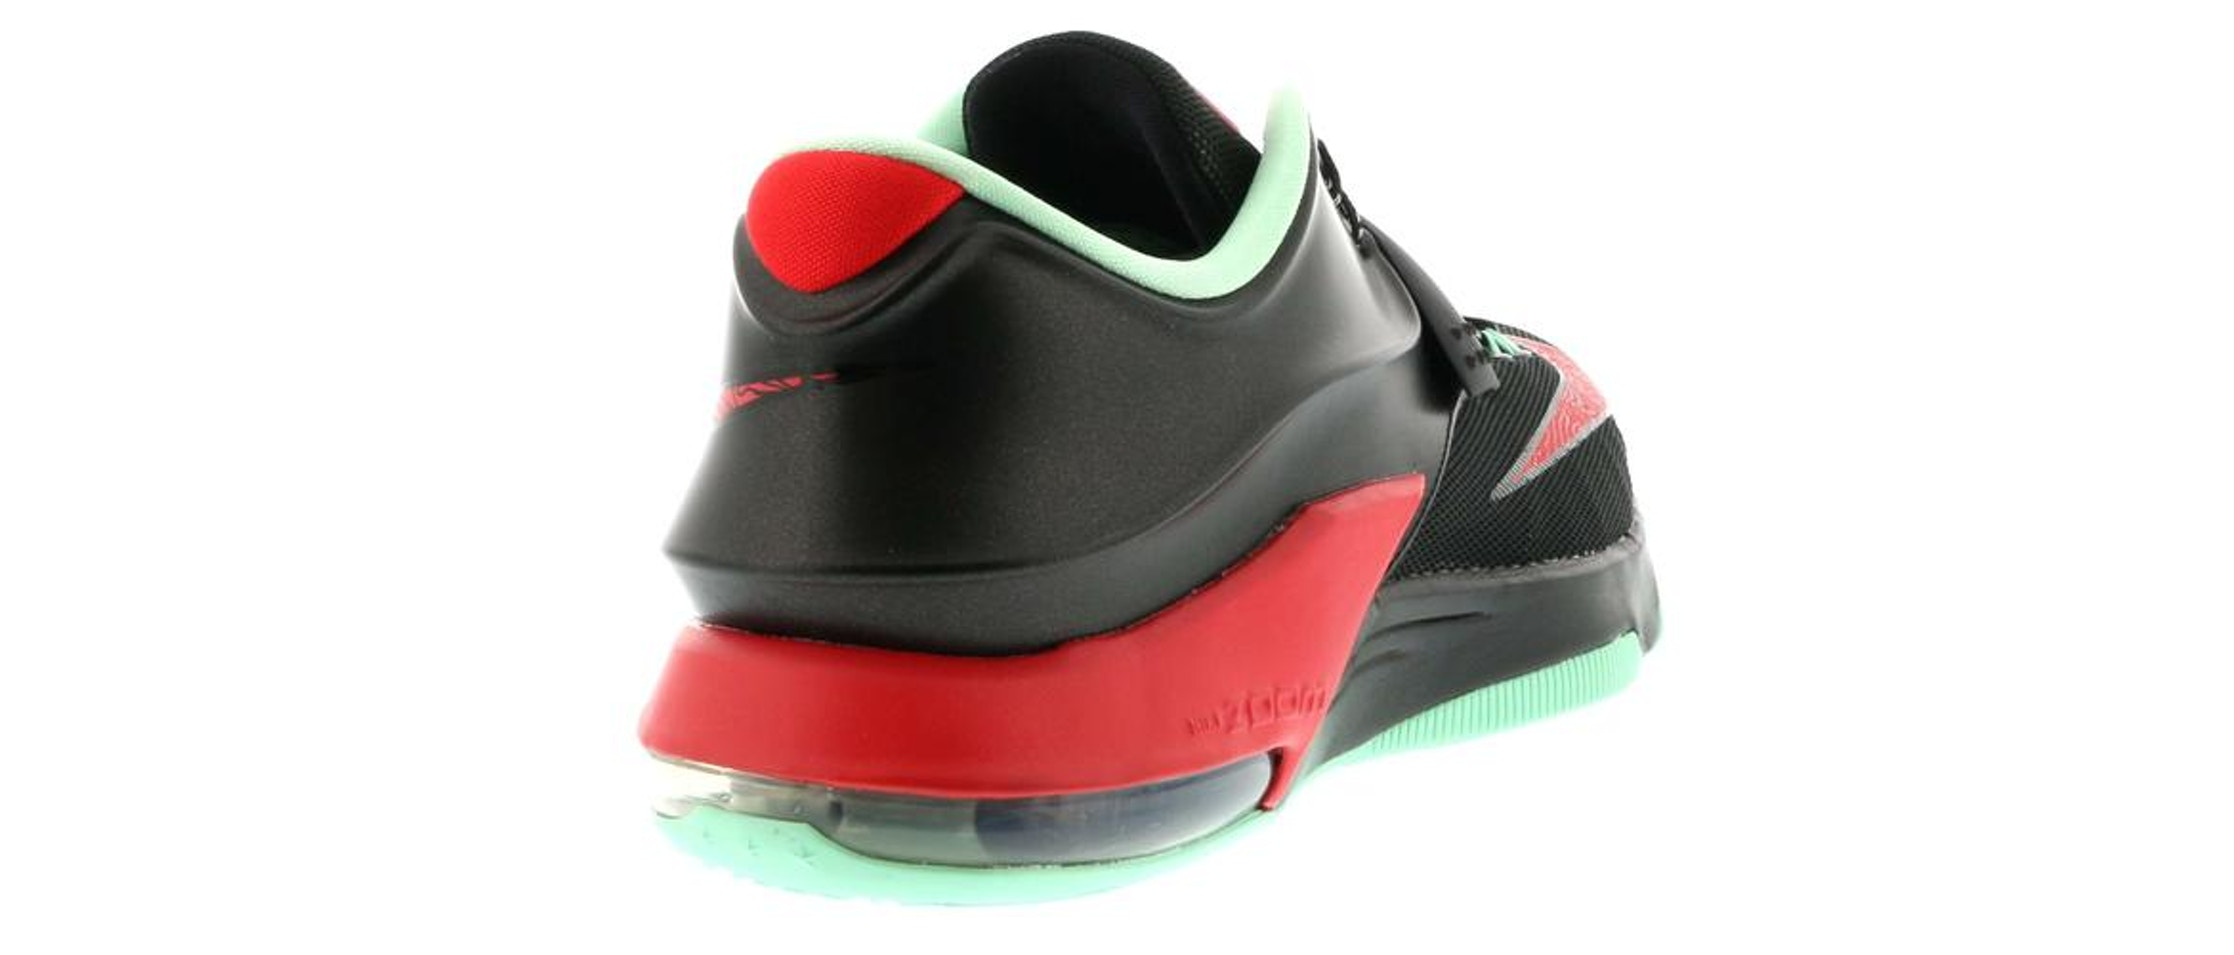 e3ebaea48260 nike kd 7 good apples you know what they say about an apple a day